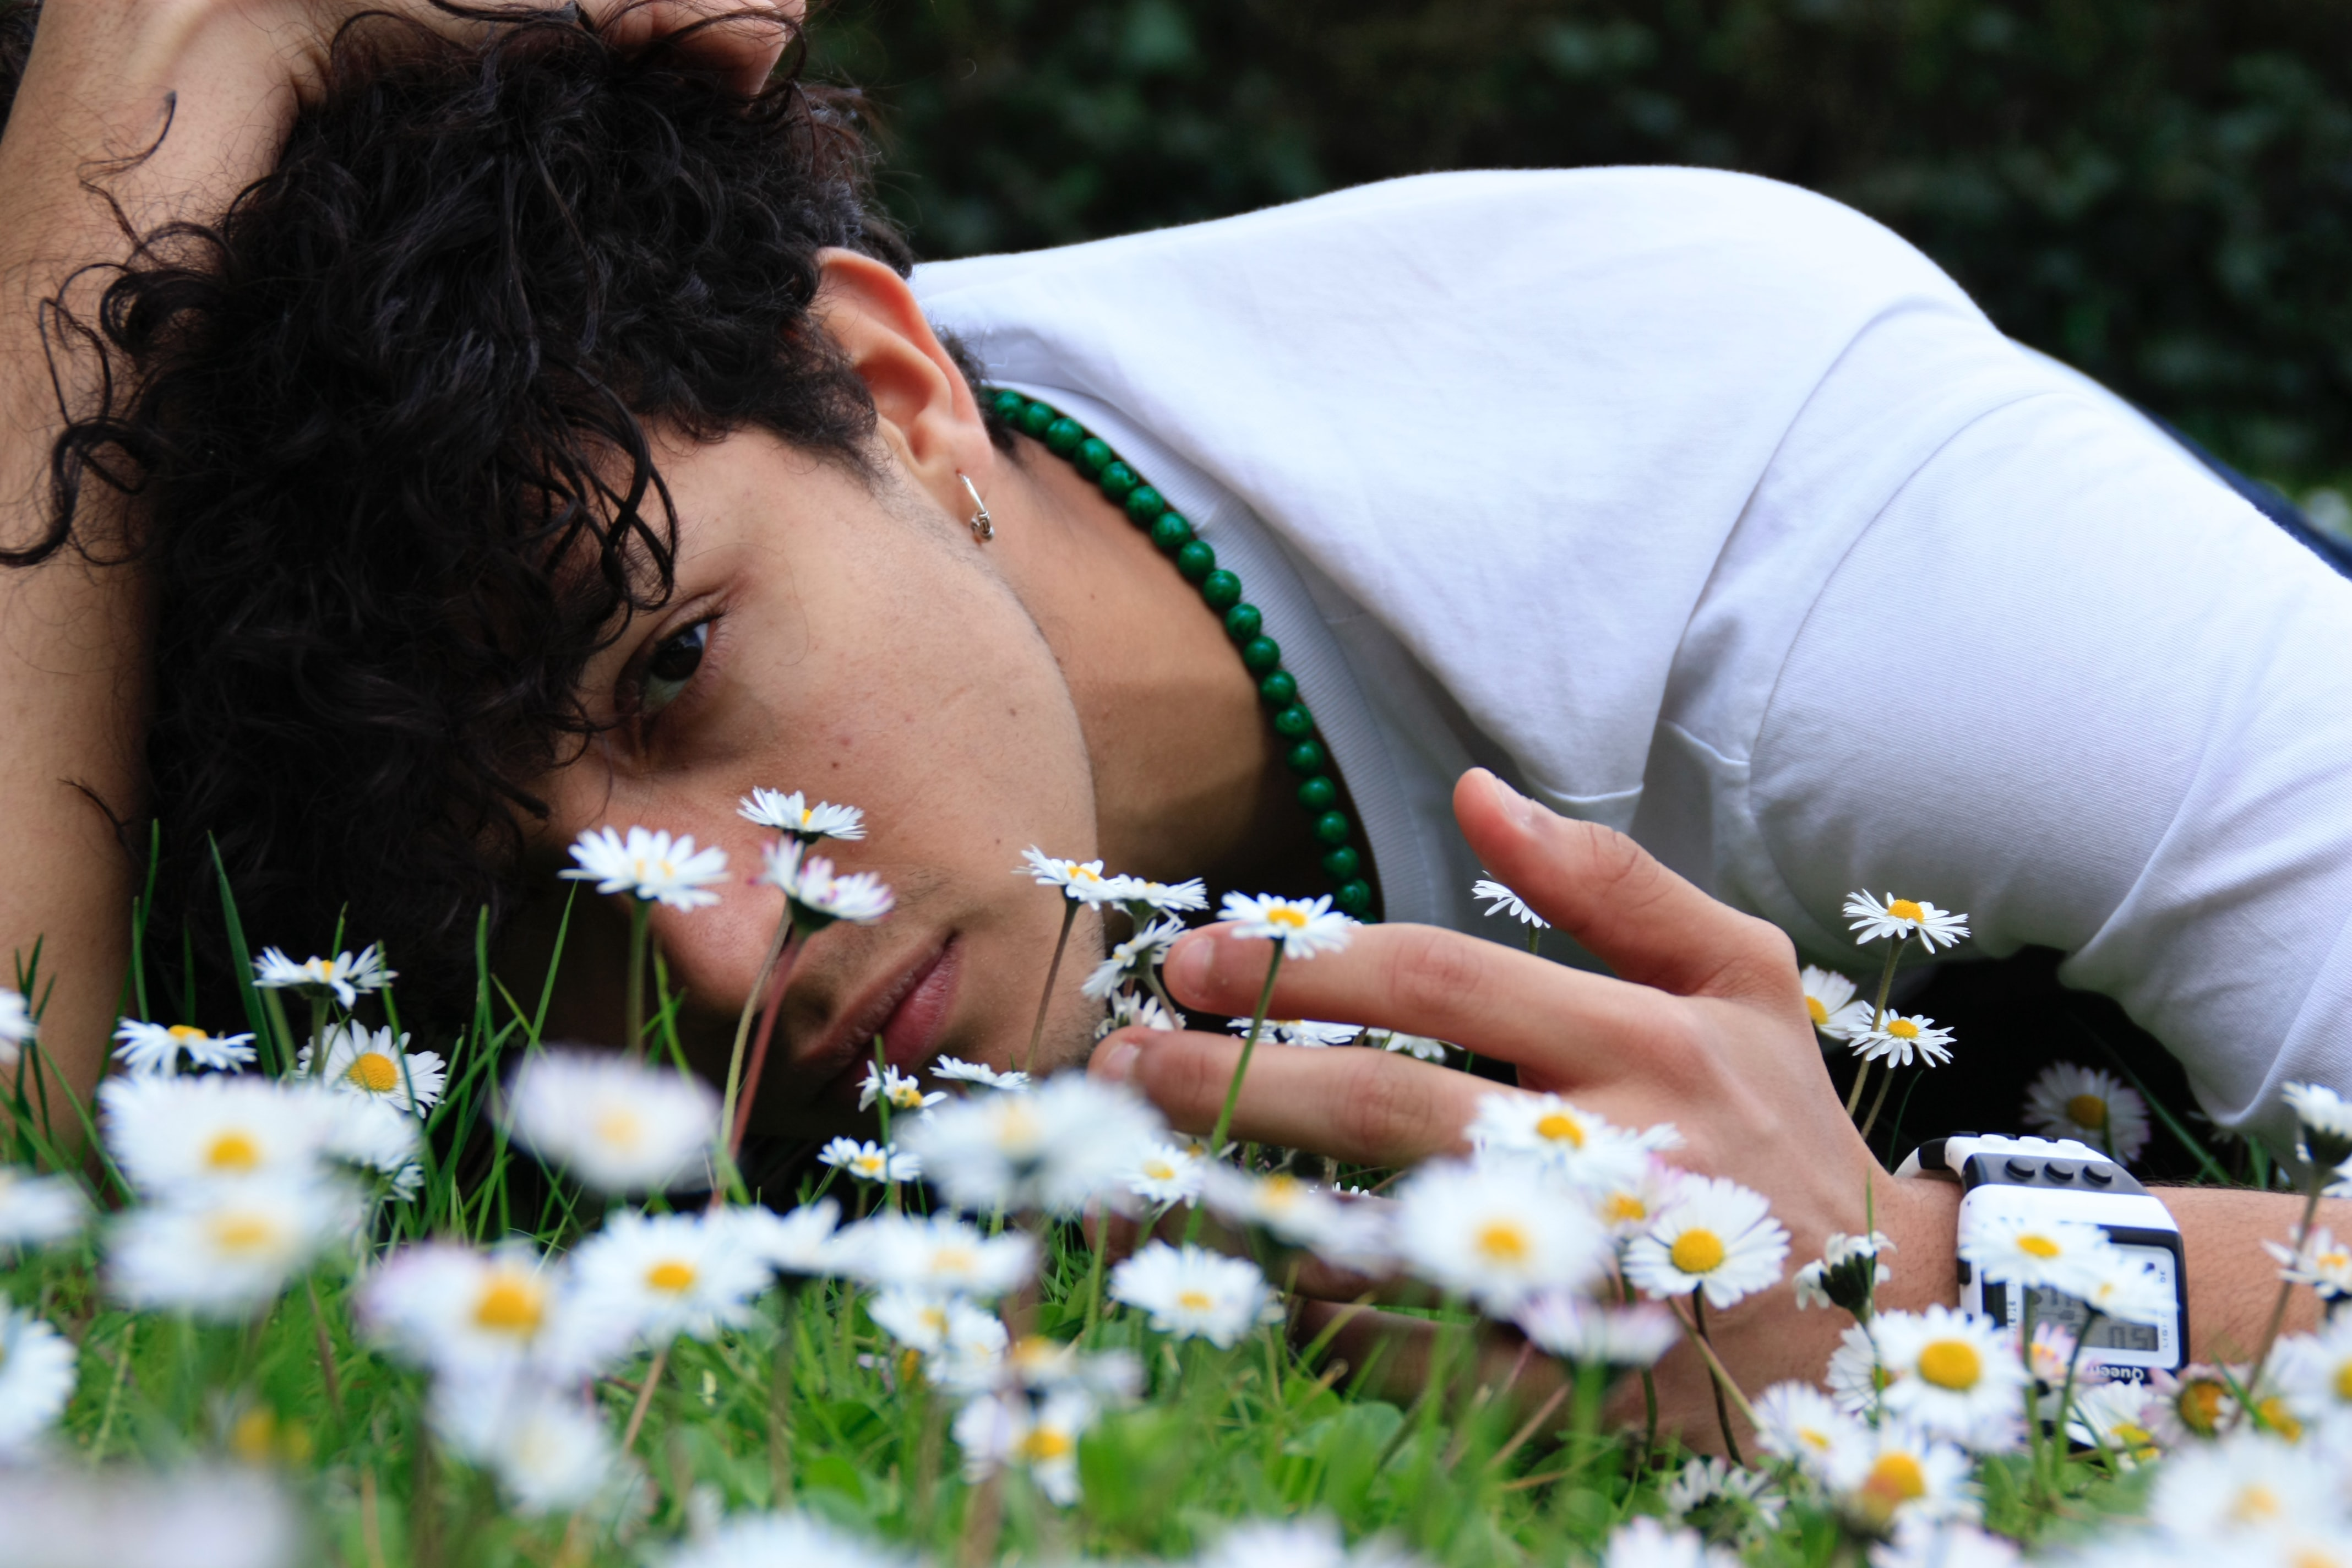 A young man is laying in the grass wearing a white shirt. There are small white flowers in front of his face.